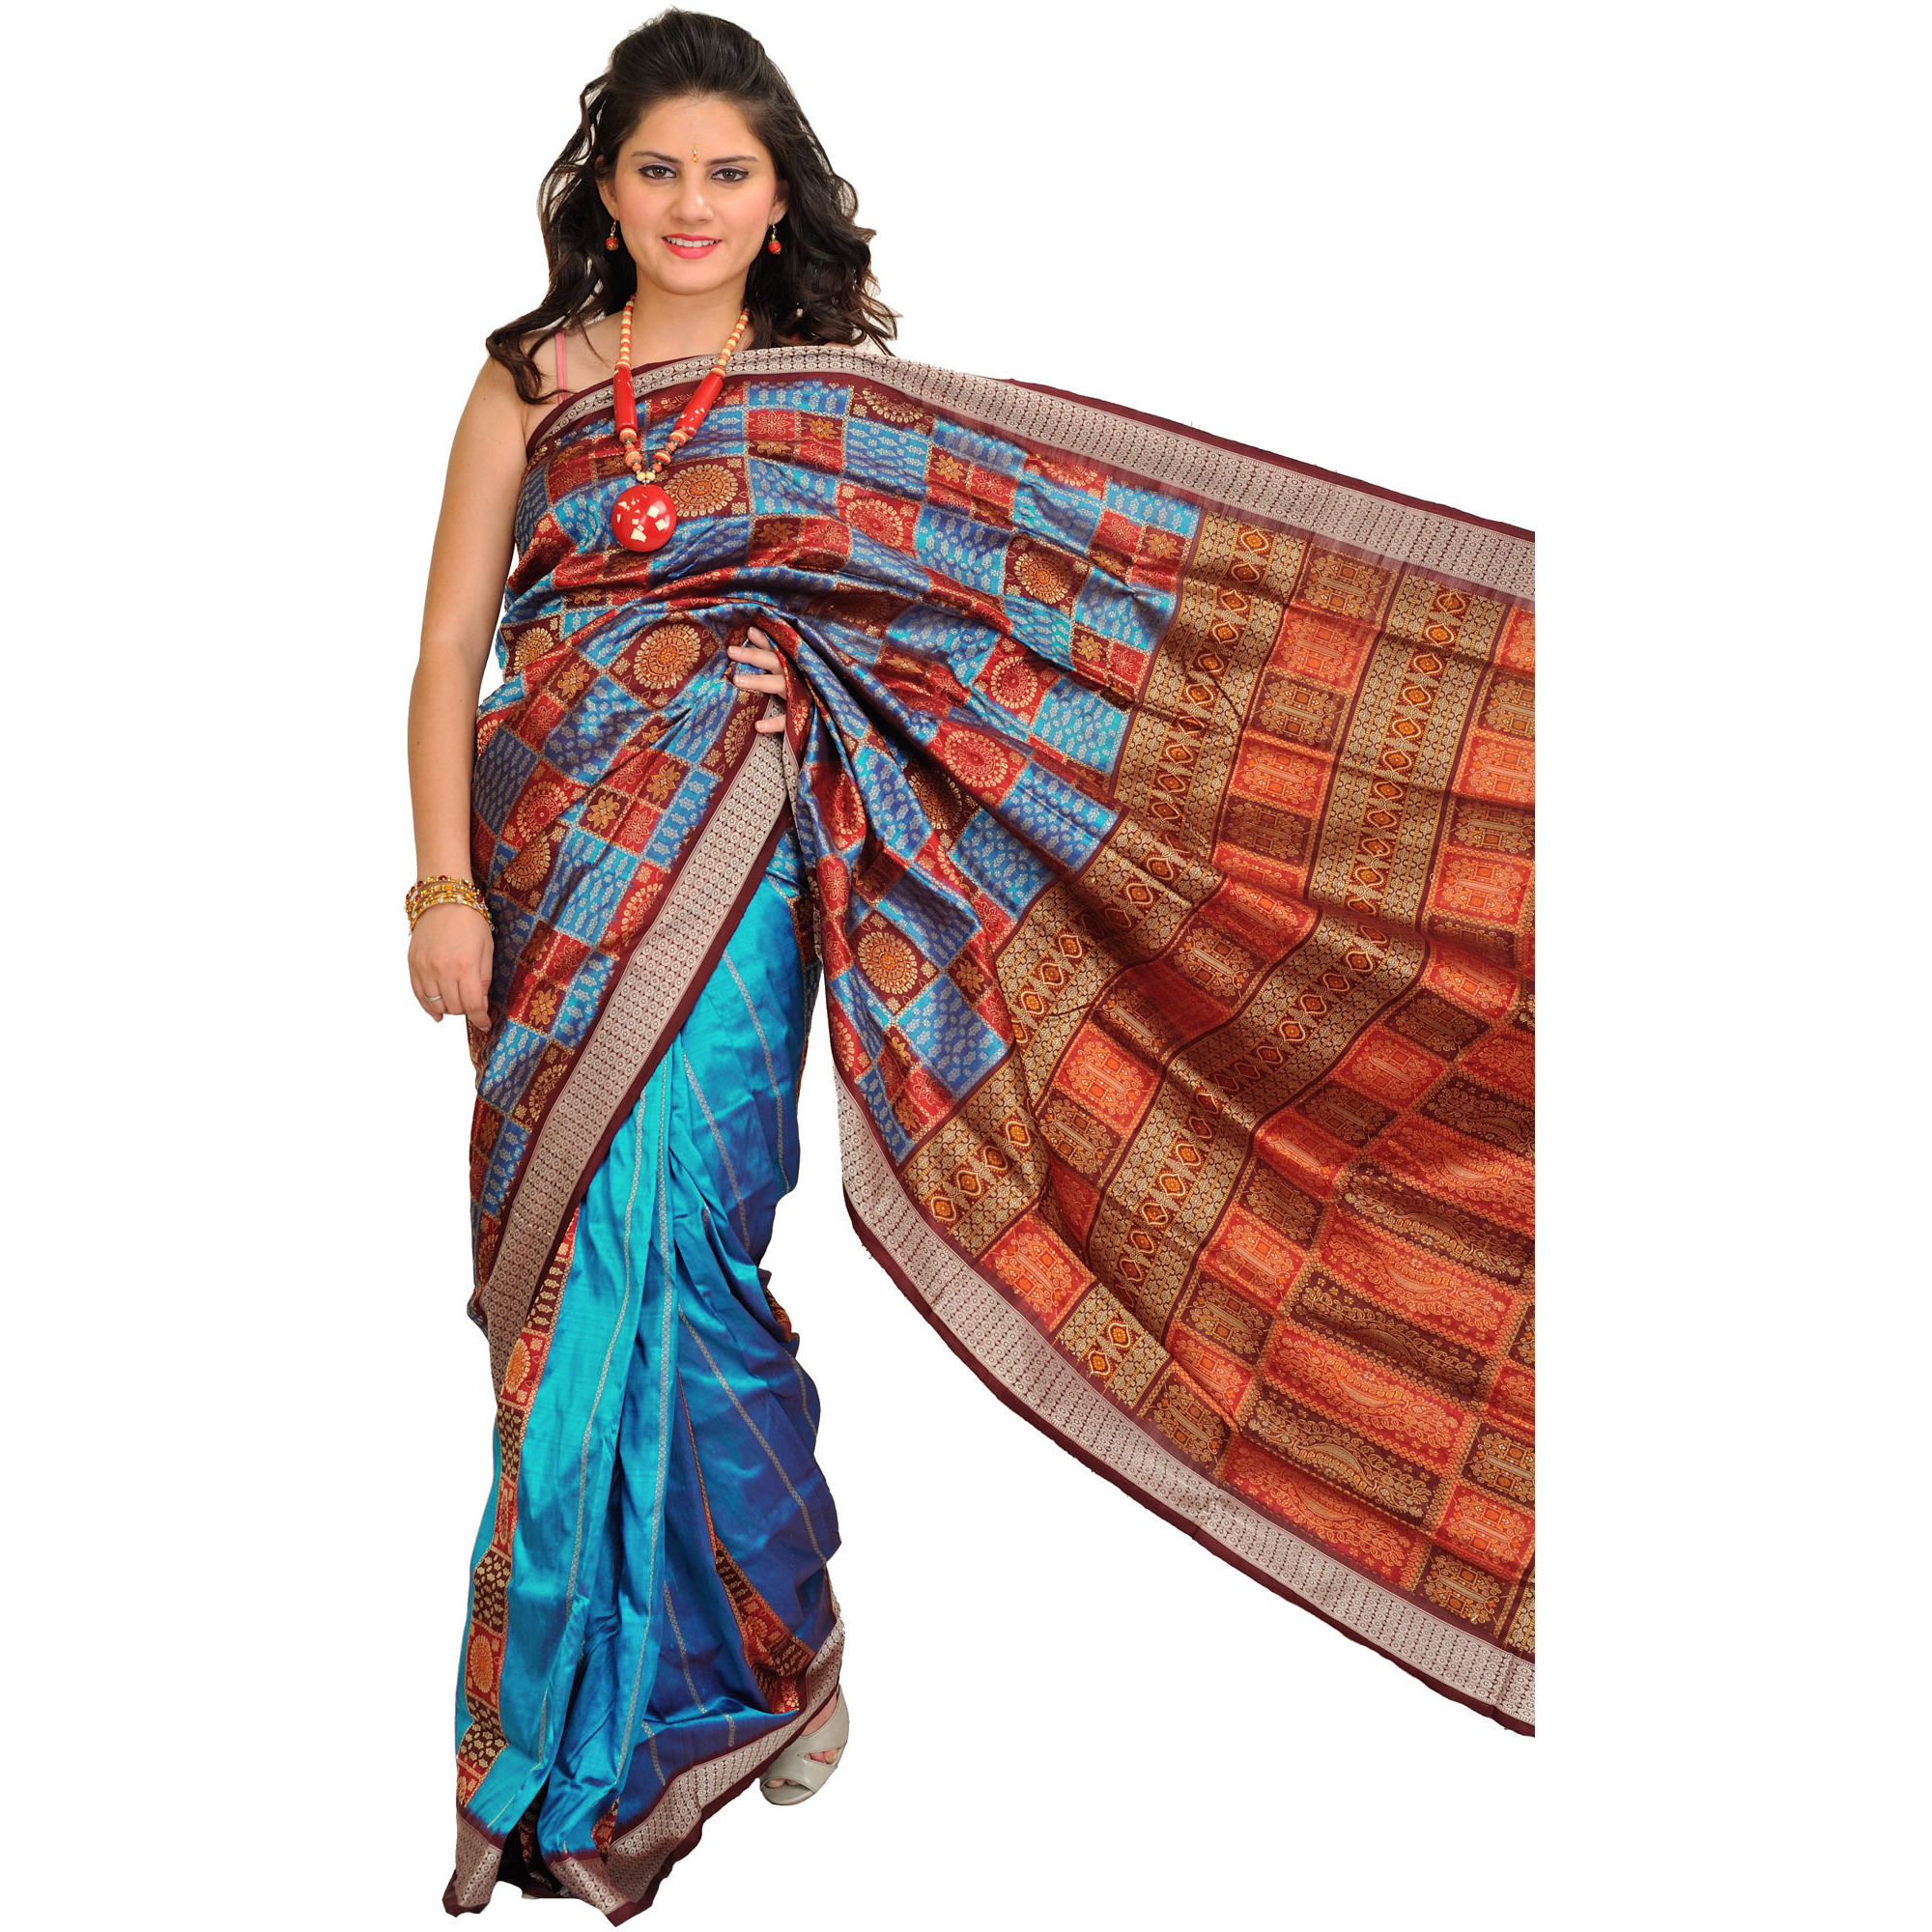 Methyl-Blue Bomkai Handloom Sari from Orissa with Woven Motifs